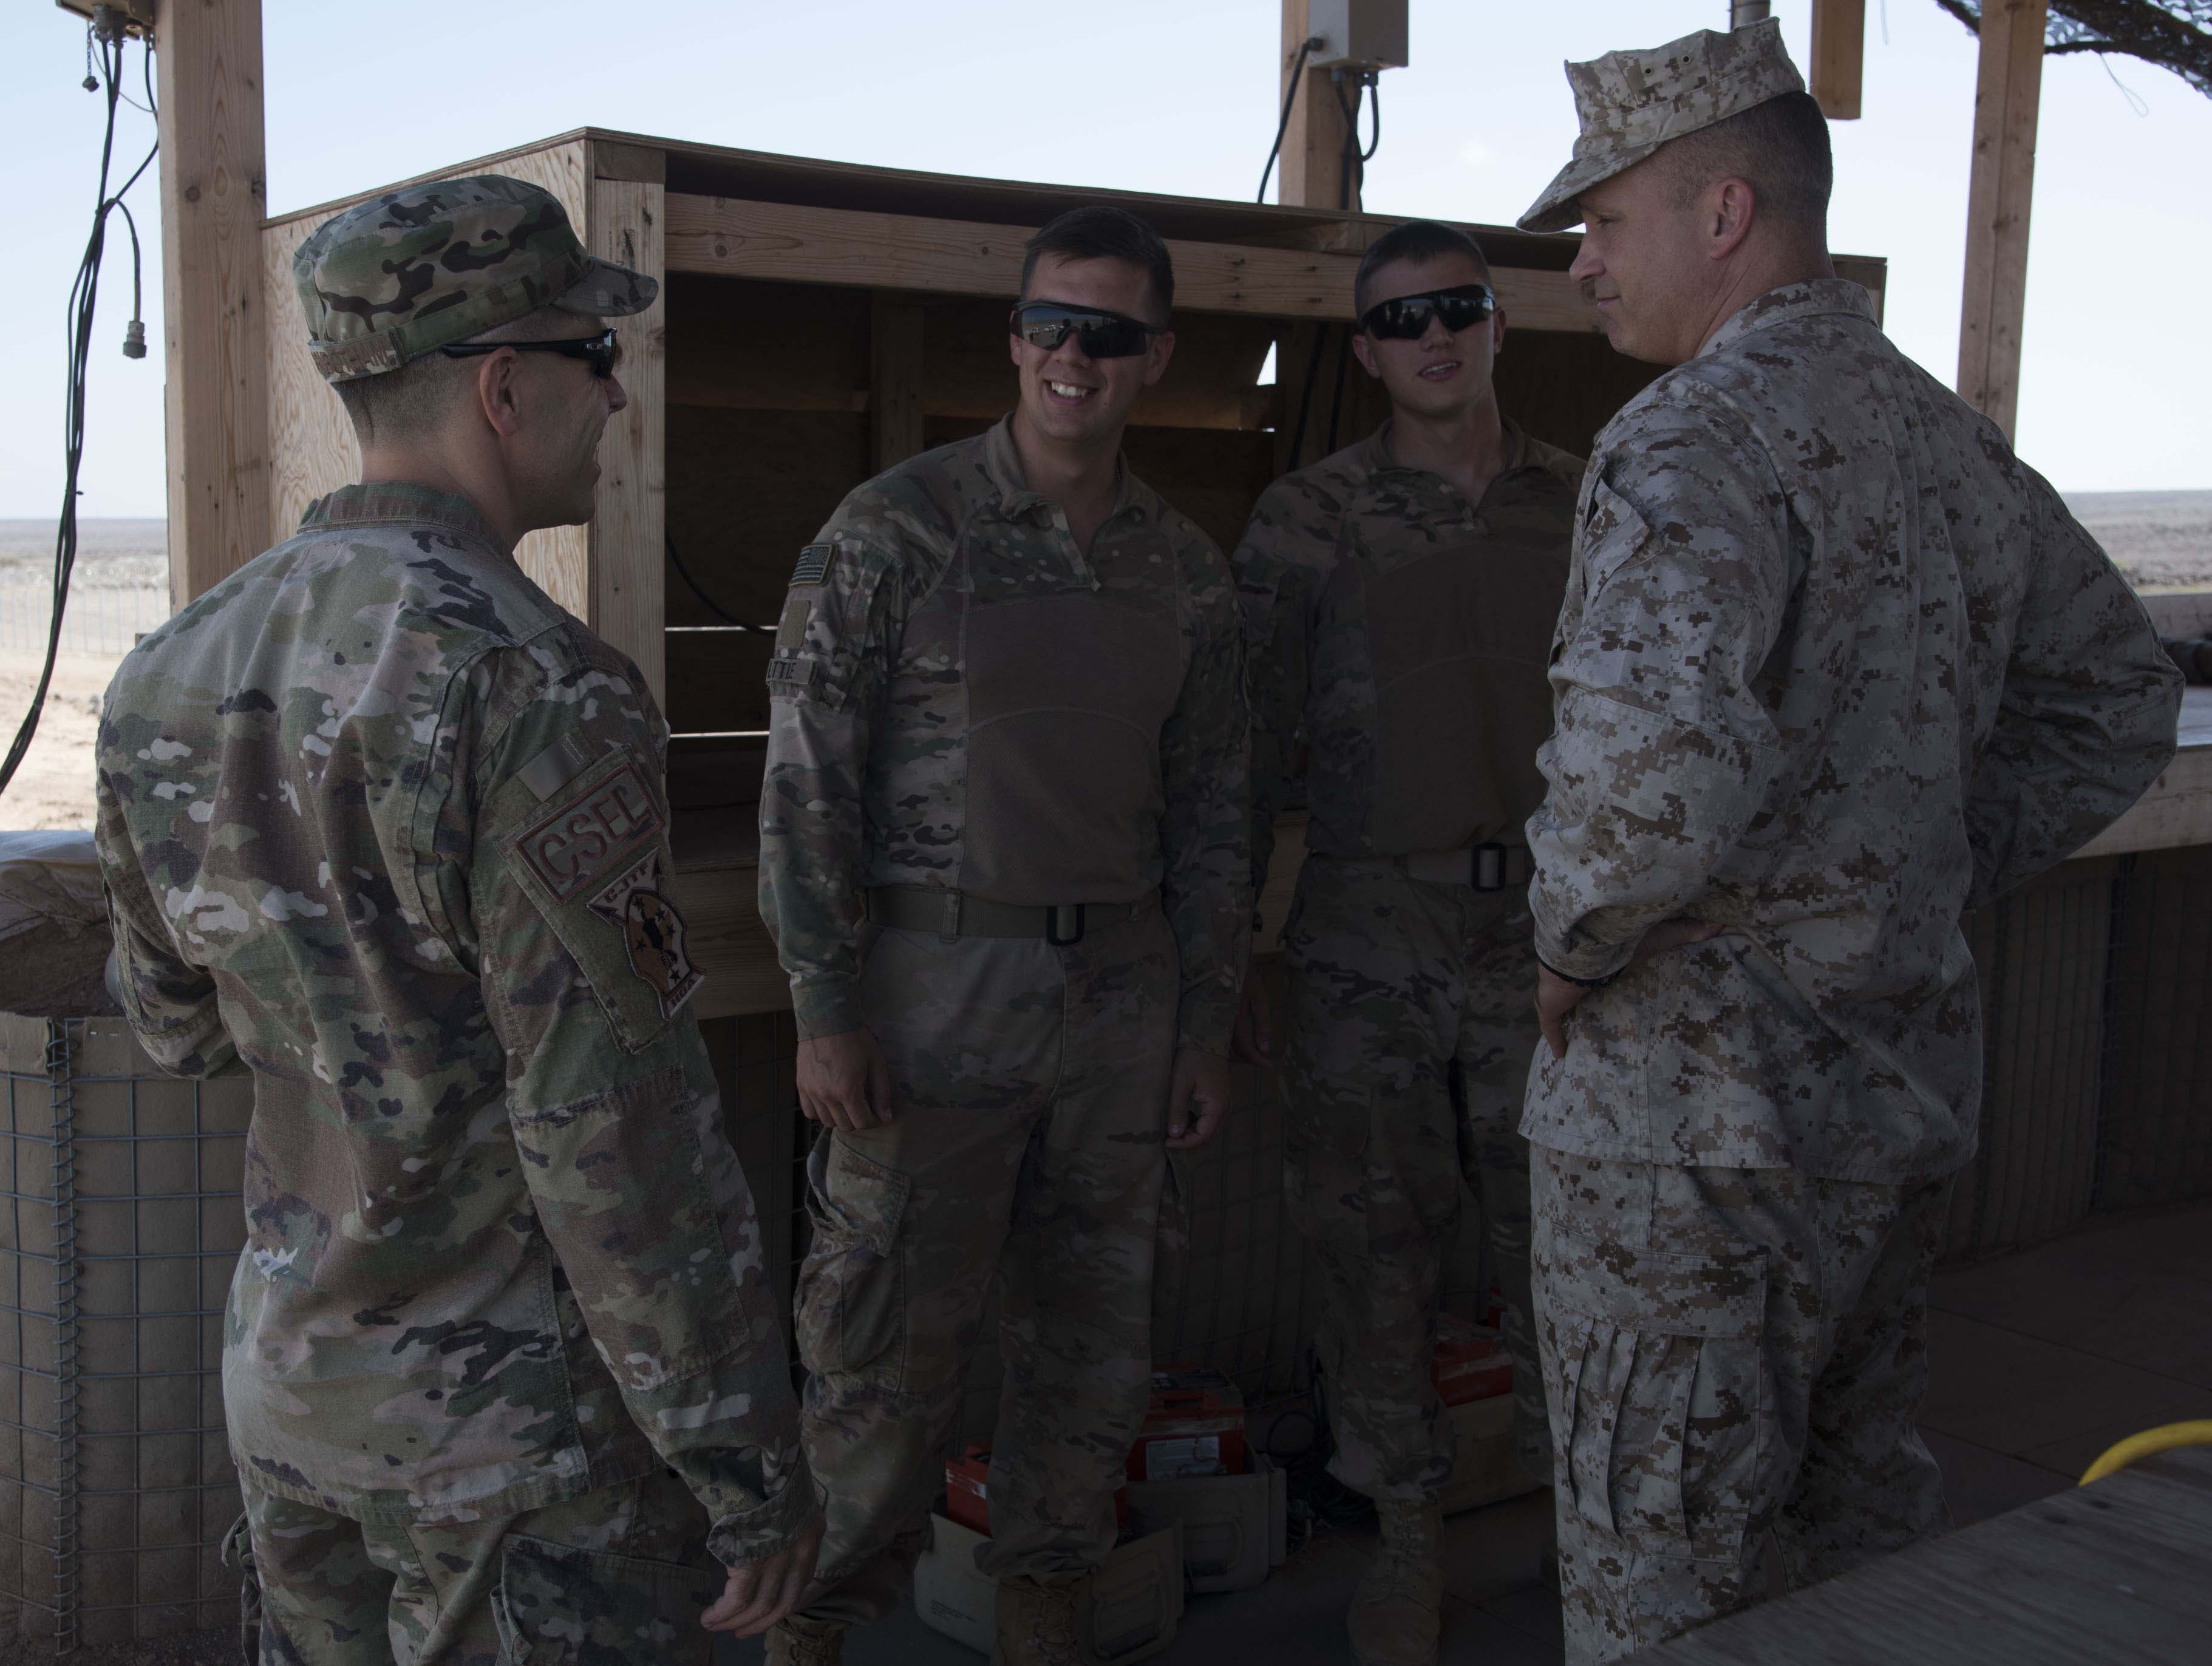 U.S. Marine Corps Brig. Gen. David J. Furness, commander of Combined Joint Task Force – Horn of Africa, and U.S. Air Force CommandChief Master Sgt. Benjamin J. Higginbotham, command senior enlisted leader of CJTF-HOA,  visit with troops in Chebelley, Djibouti, Dec. 25, 2017.  The leaders spent the afternoon meeting with service members and thanking them for their continued service and sacrifice throughout the holiday season. (U.S. Air National Guard photo by Staff Sgt. Allyson L. Manners)